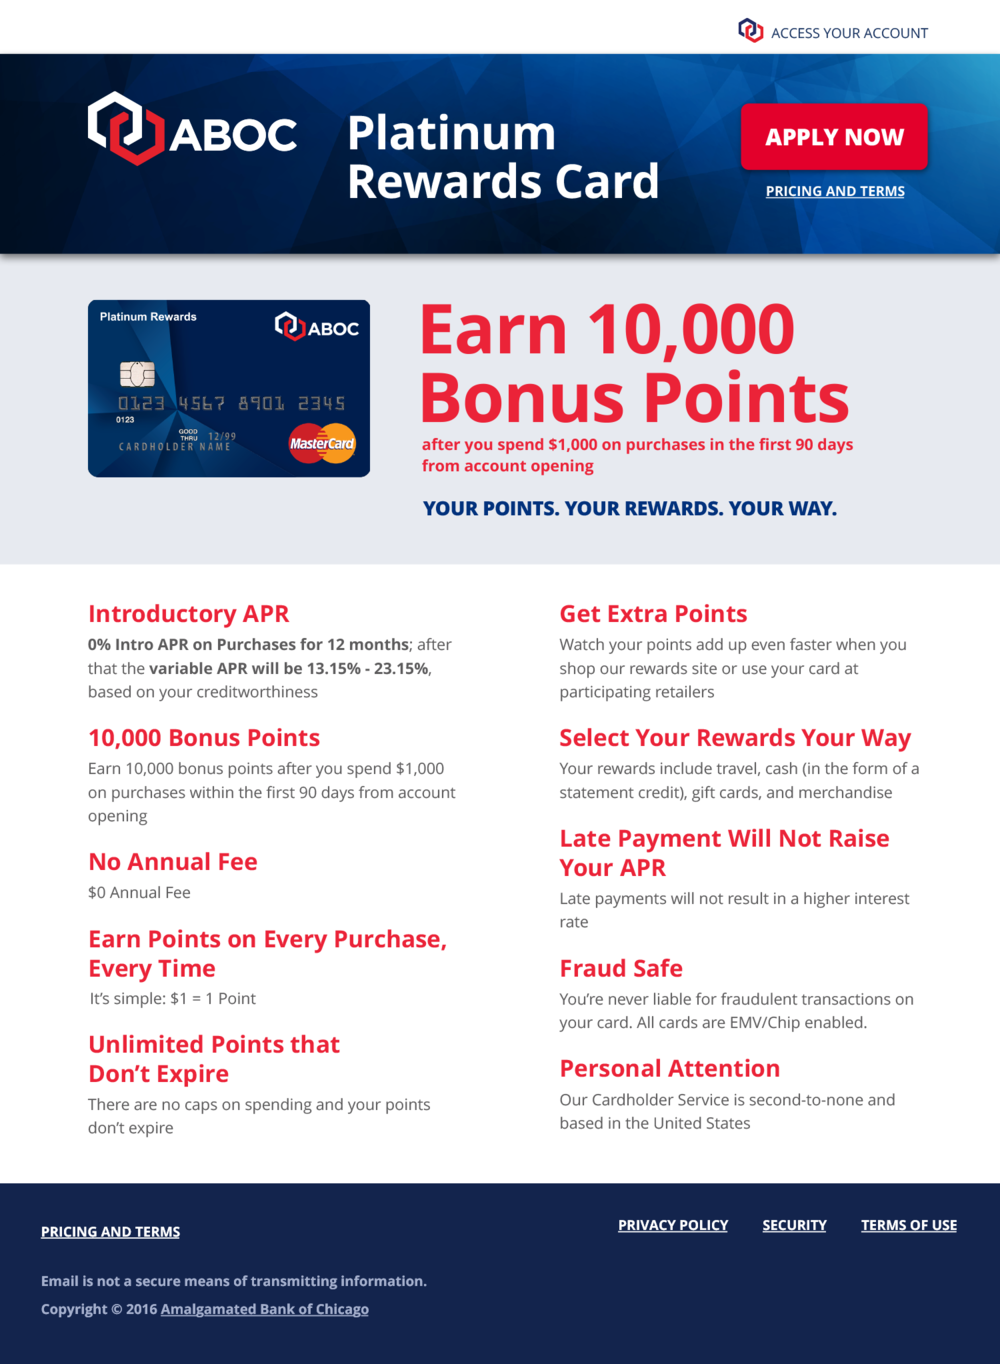 Landing page for platinum card